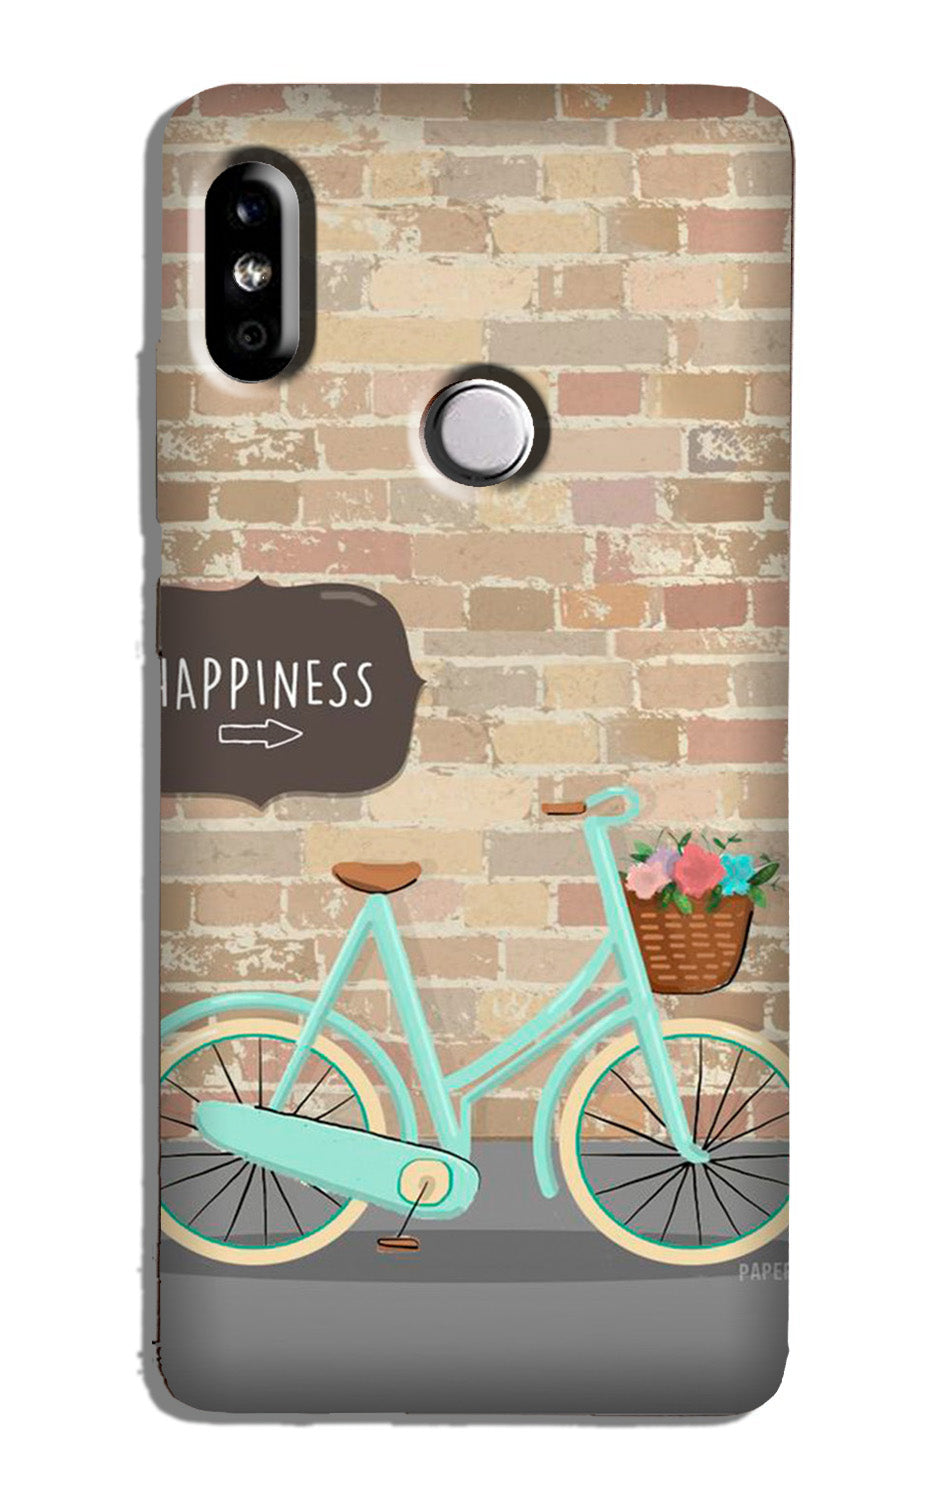 Happiness Case for Redmi Note 6 Pro